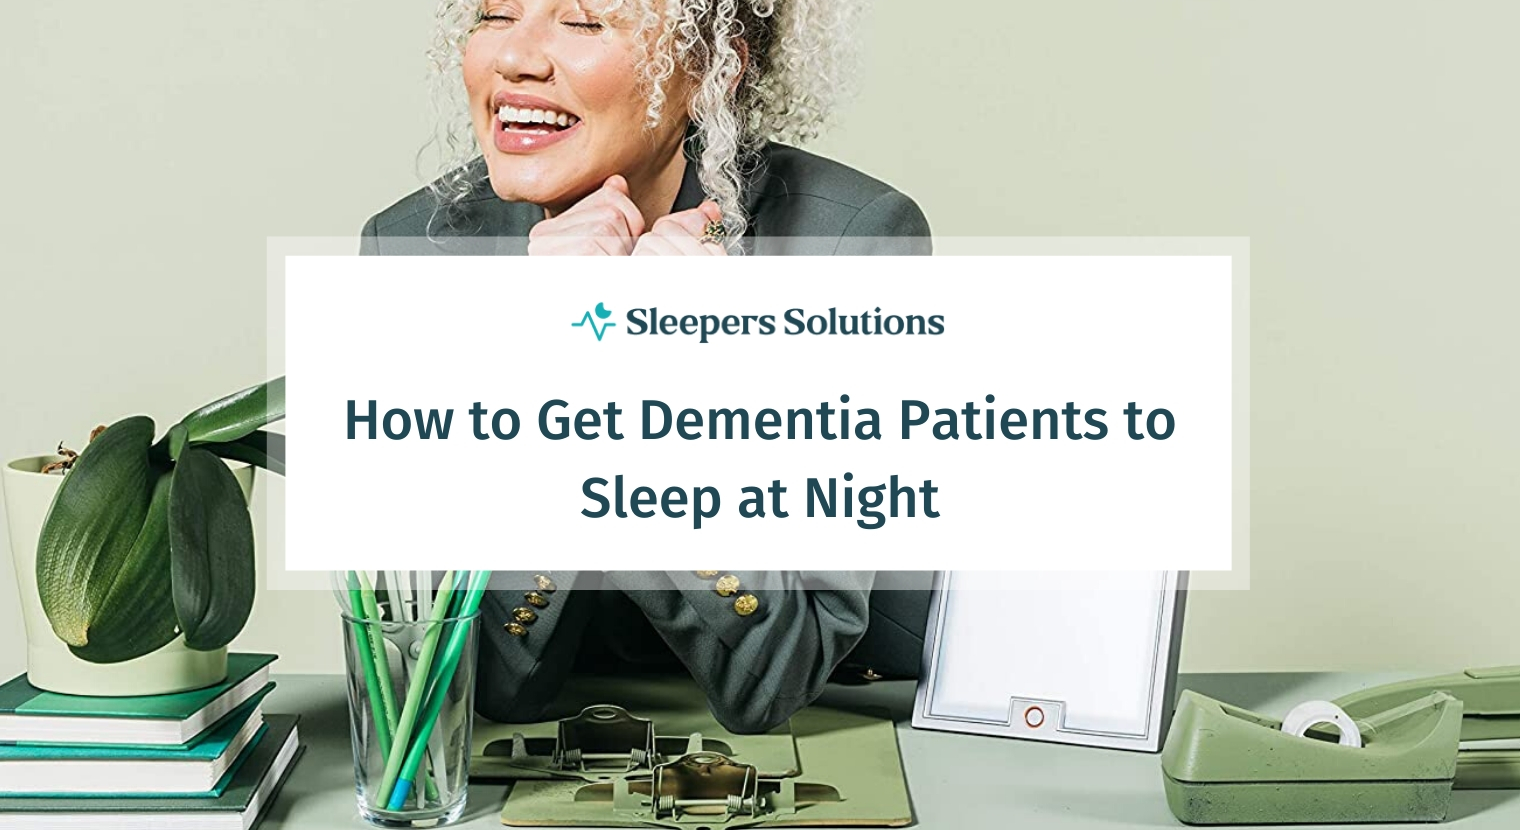 How to Get Dementia Patients to Sleep at Night